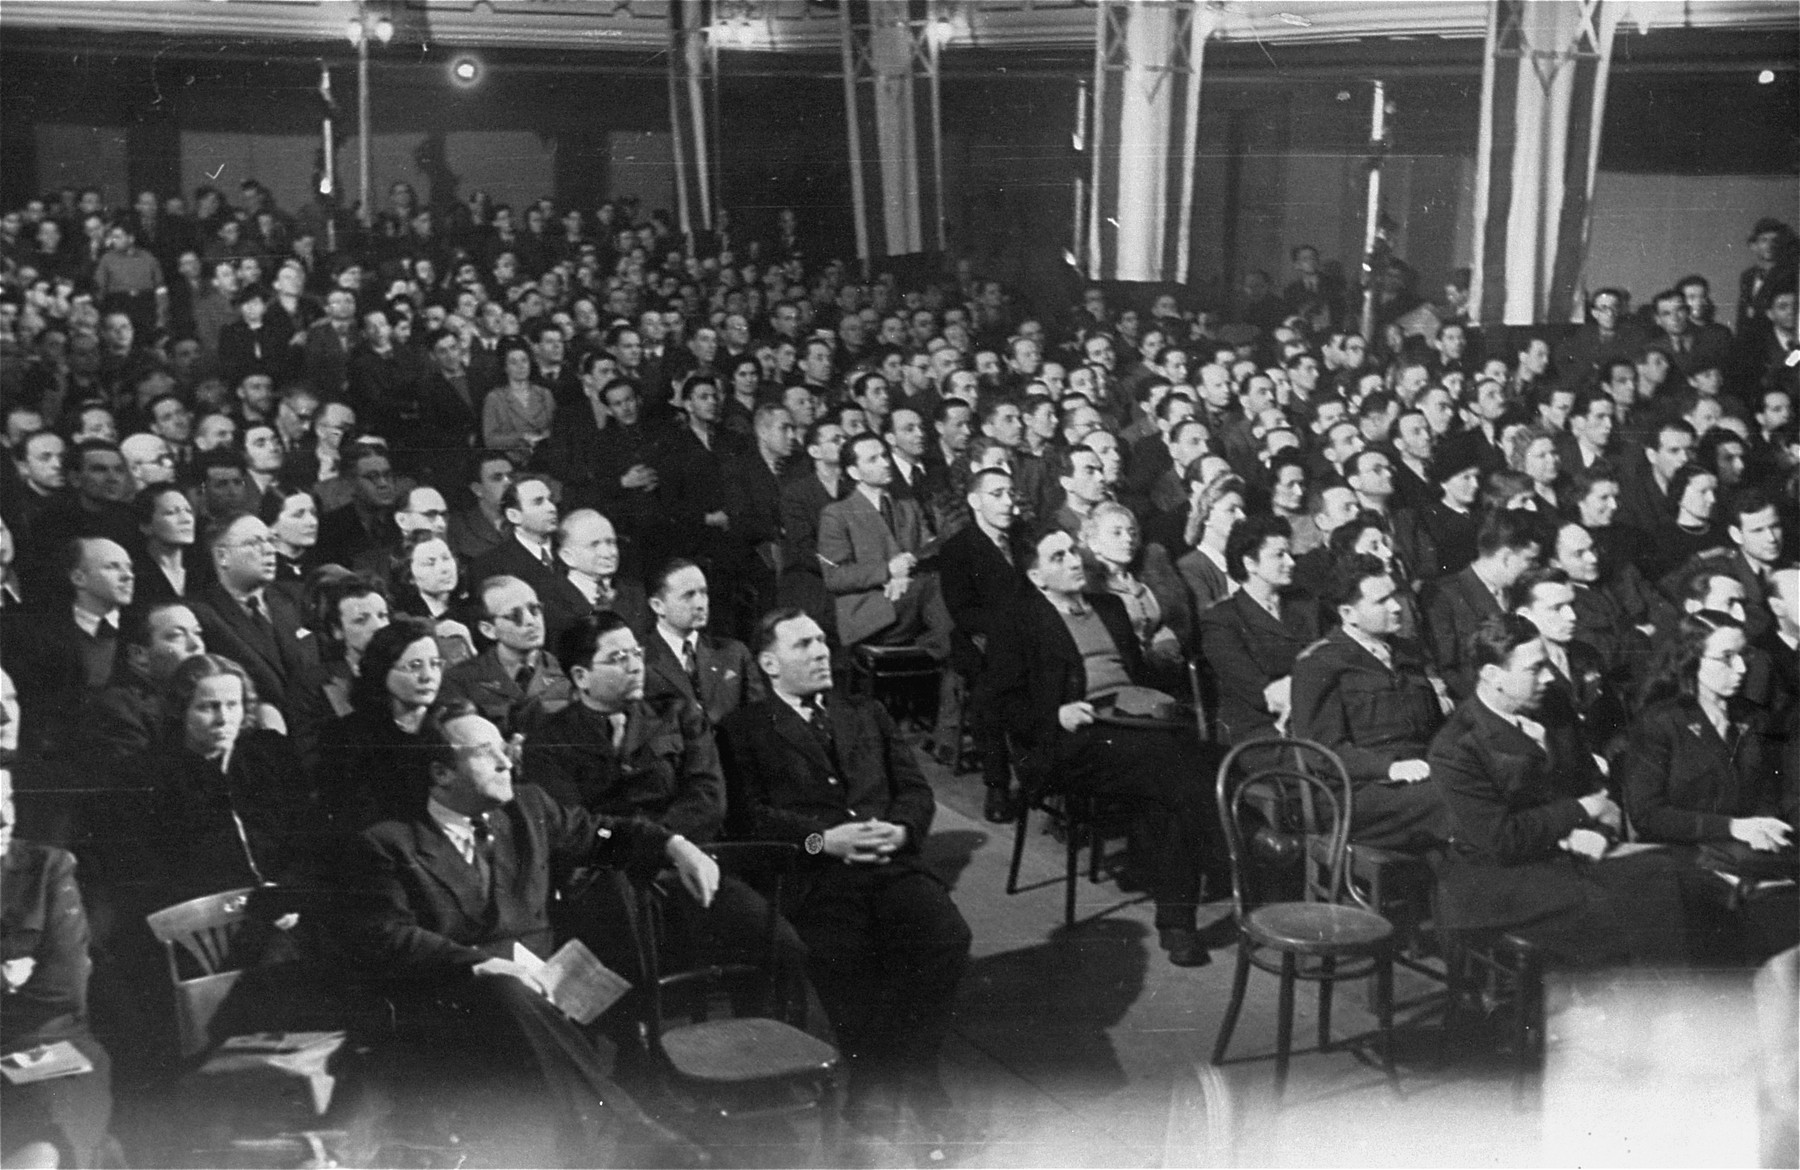 View of the audience at a post-war Zionist conference in Munich.